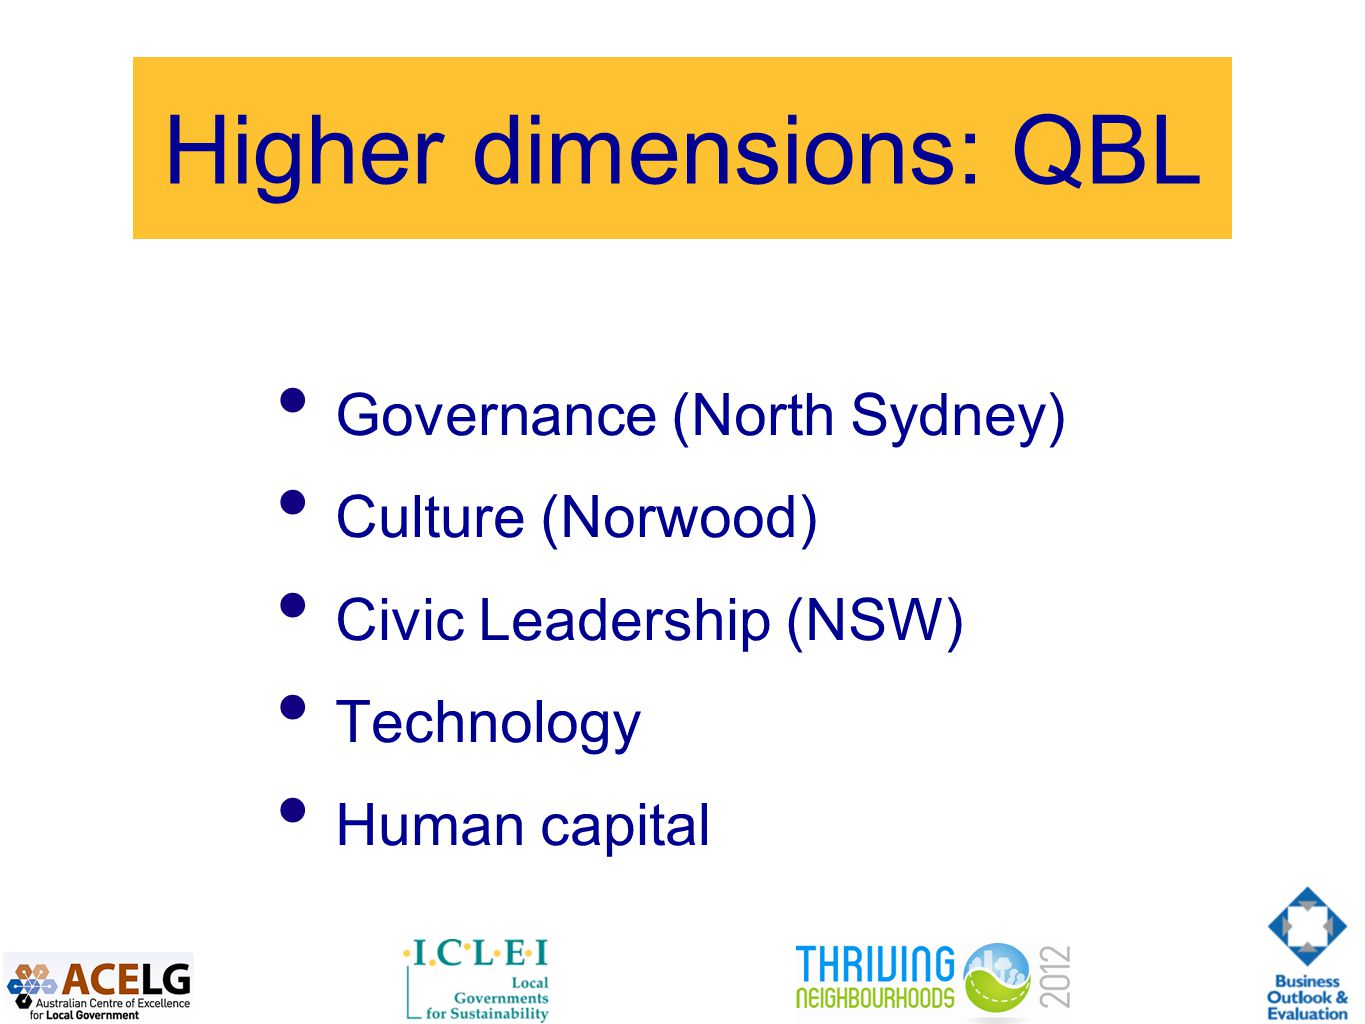 Higher dimensions: QBL Governance (North Sydney) Culture (Norwood) Civic Leadership (NSW) Technology Human capital